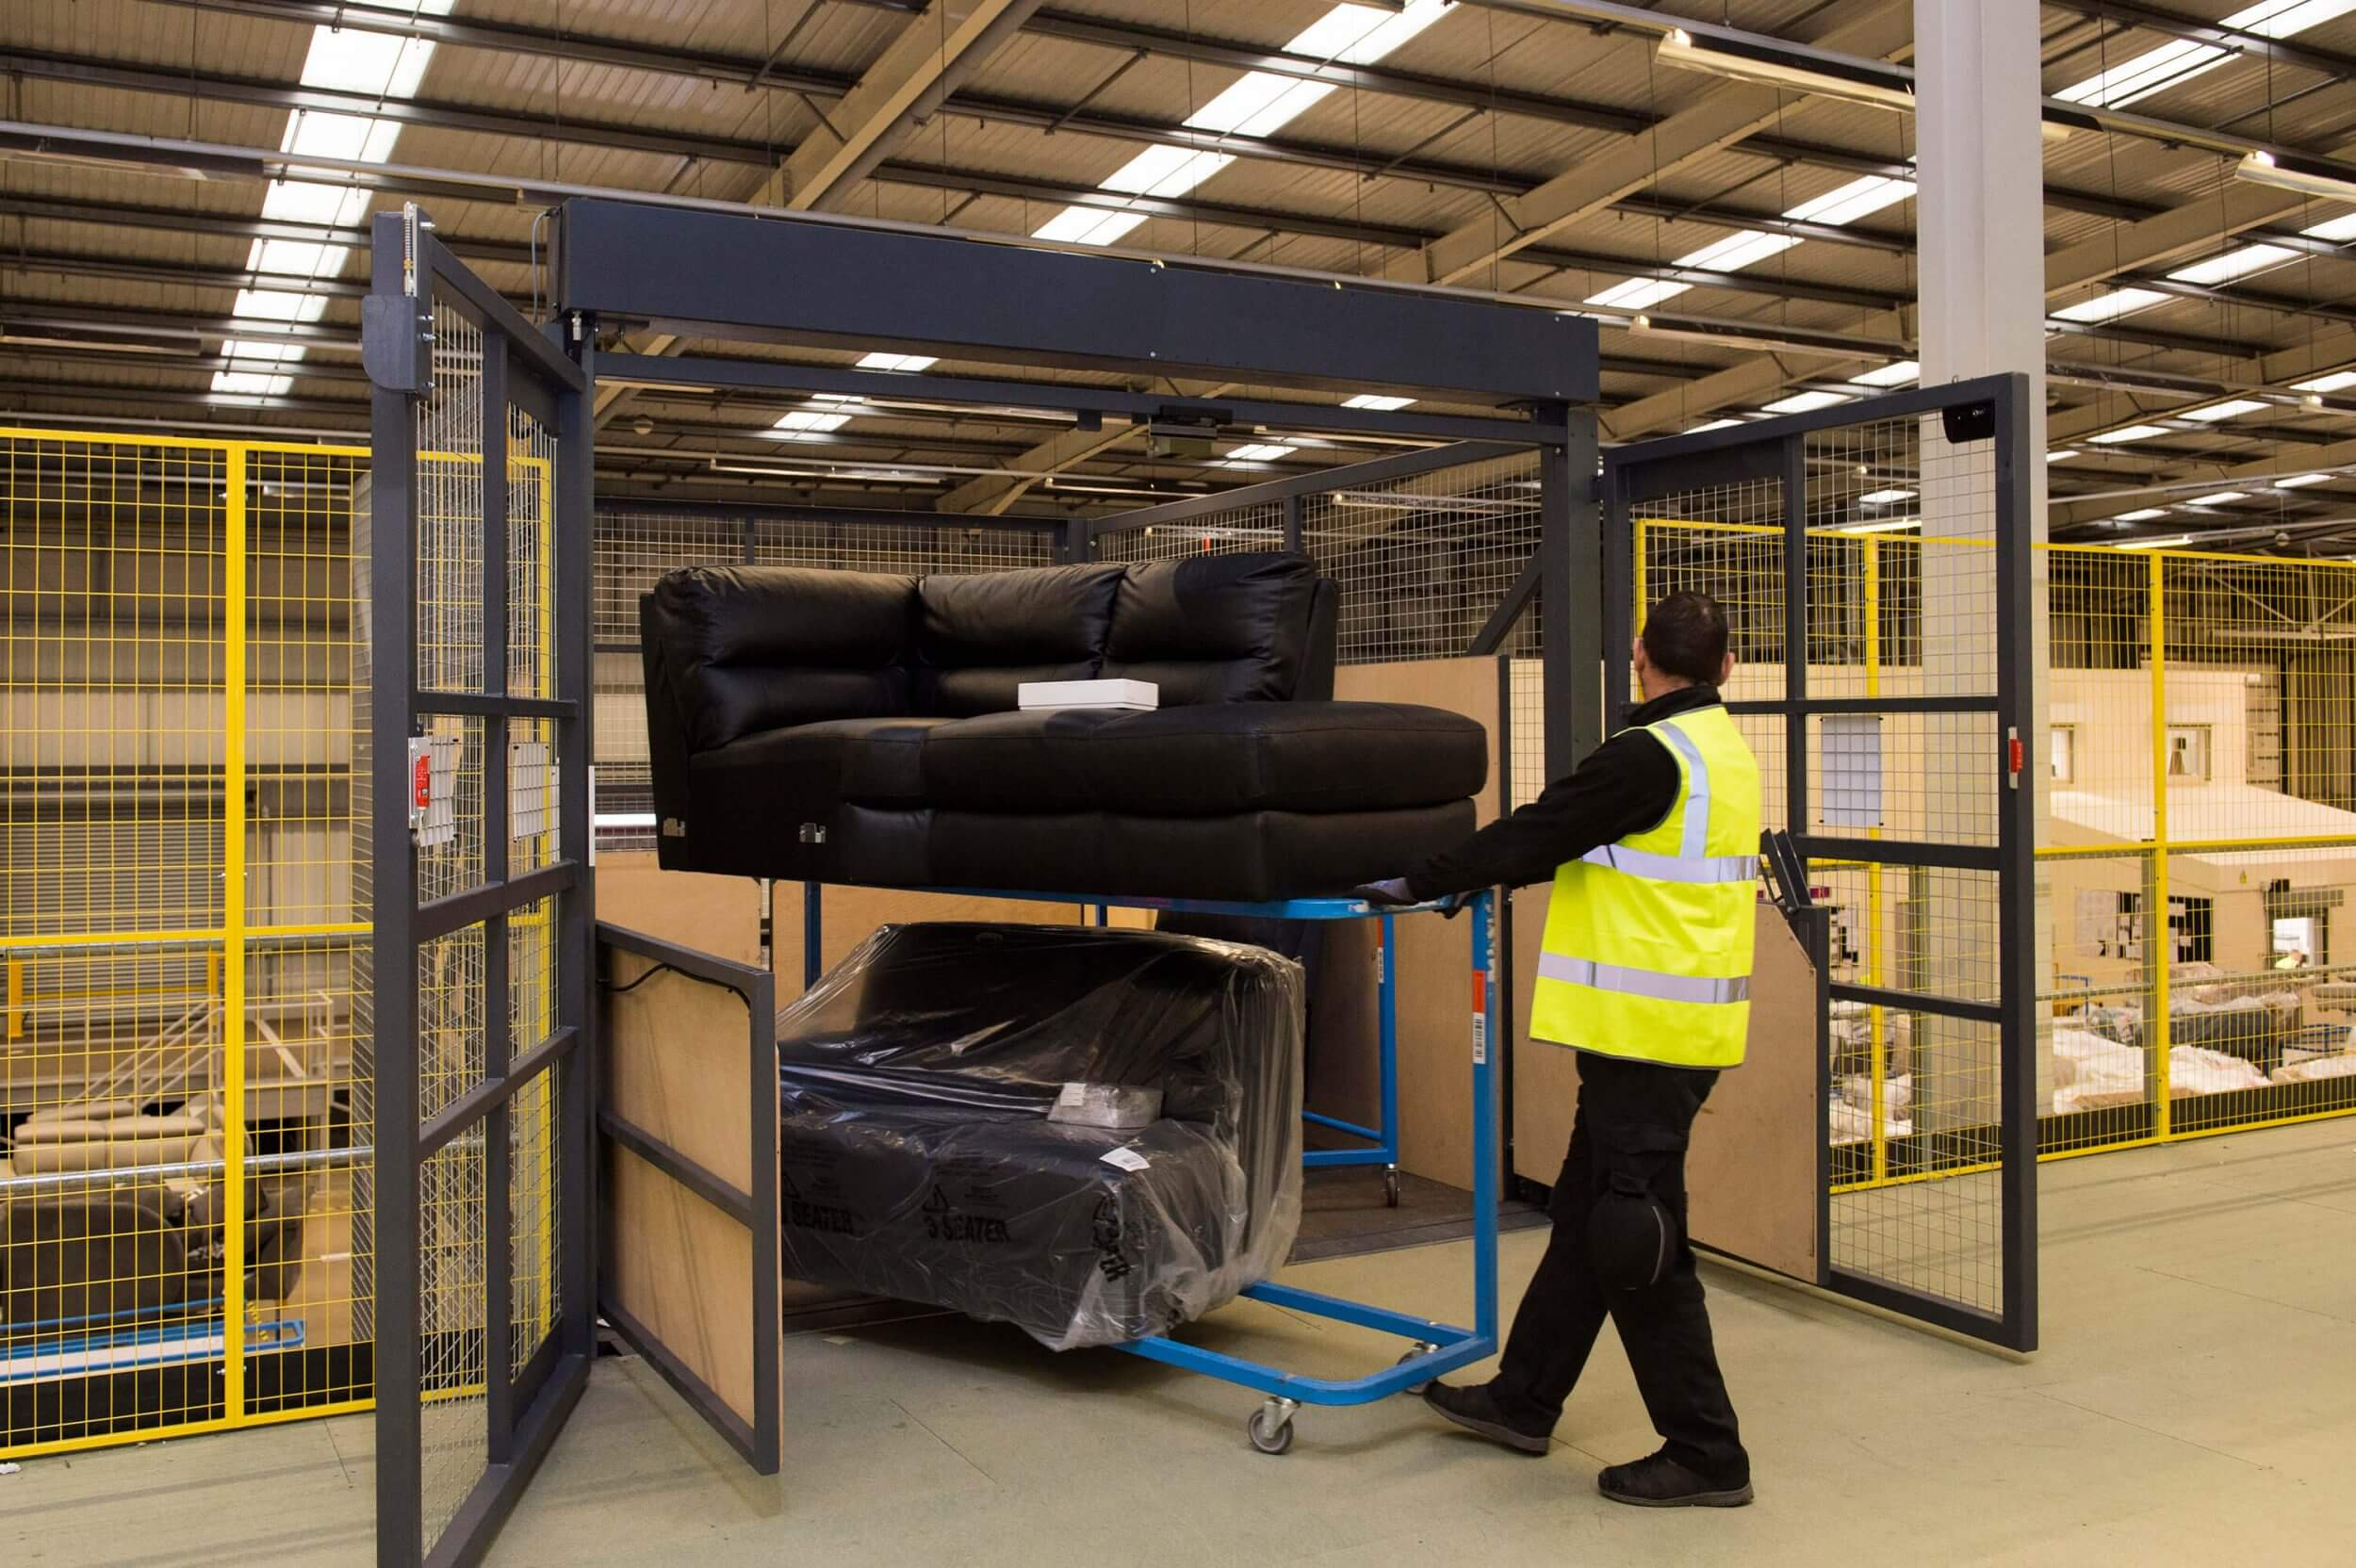 Man removing sofas from goods lift